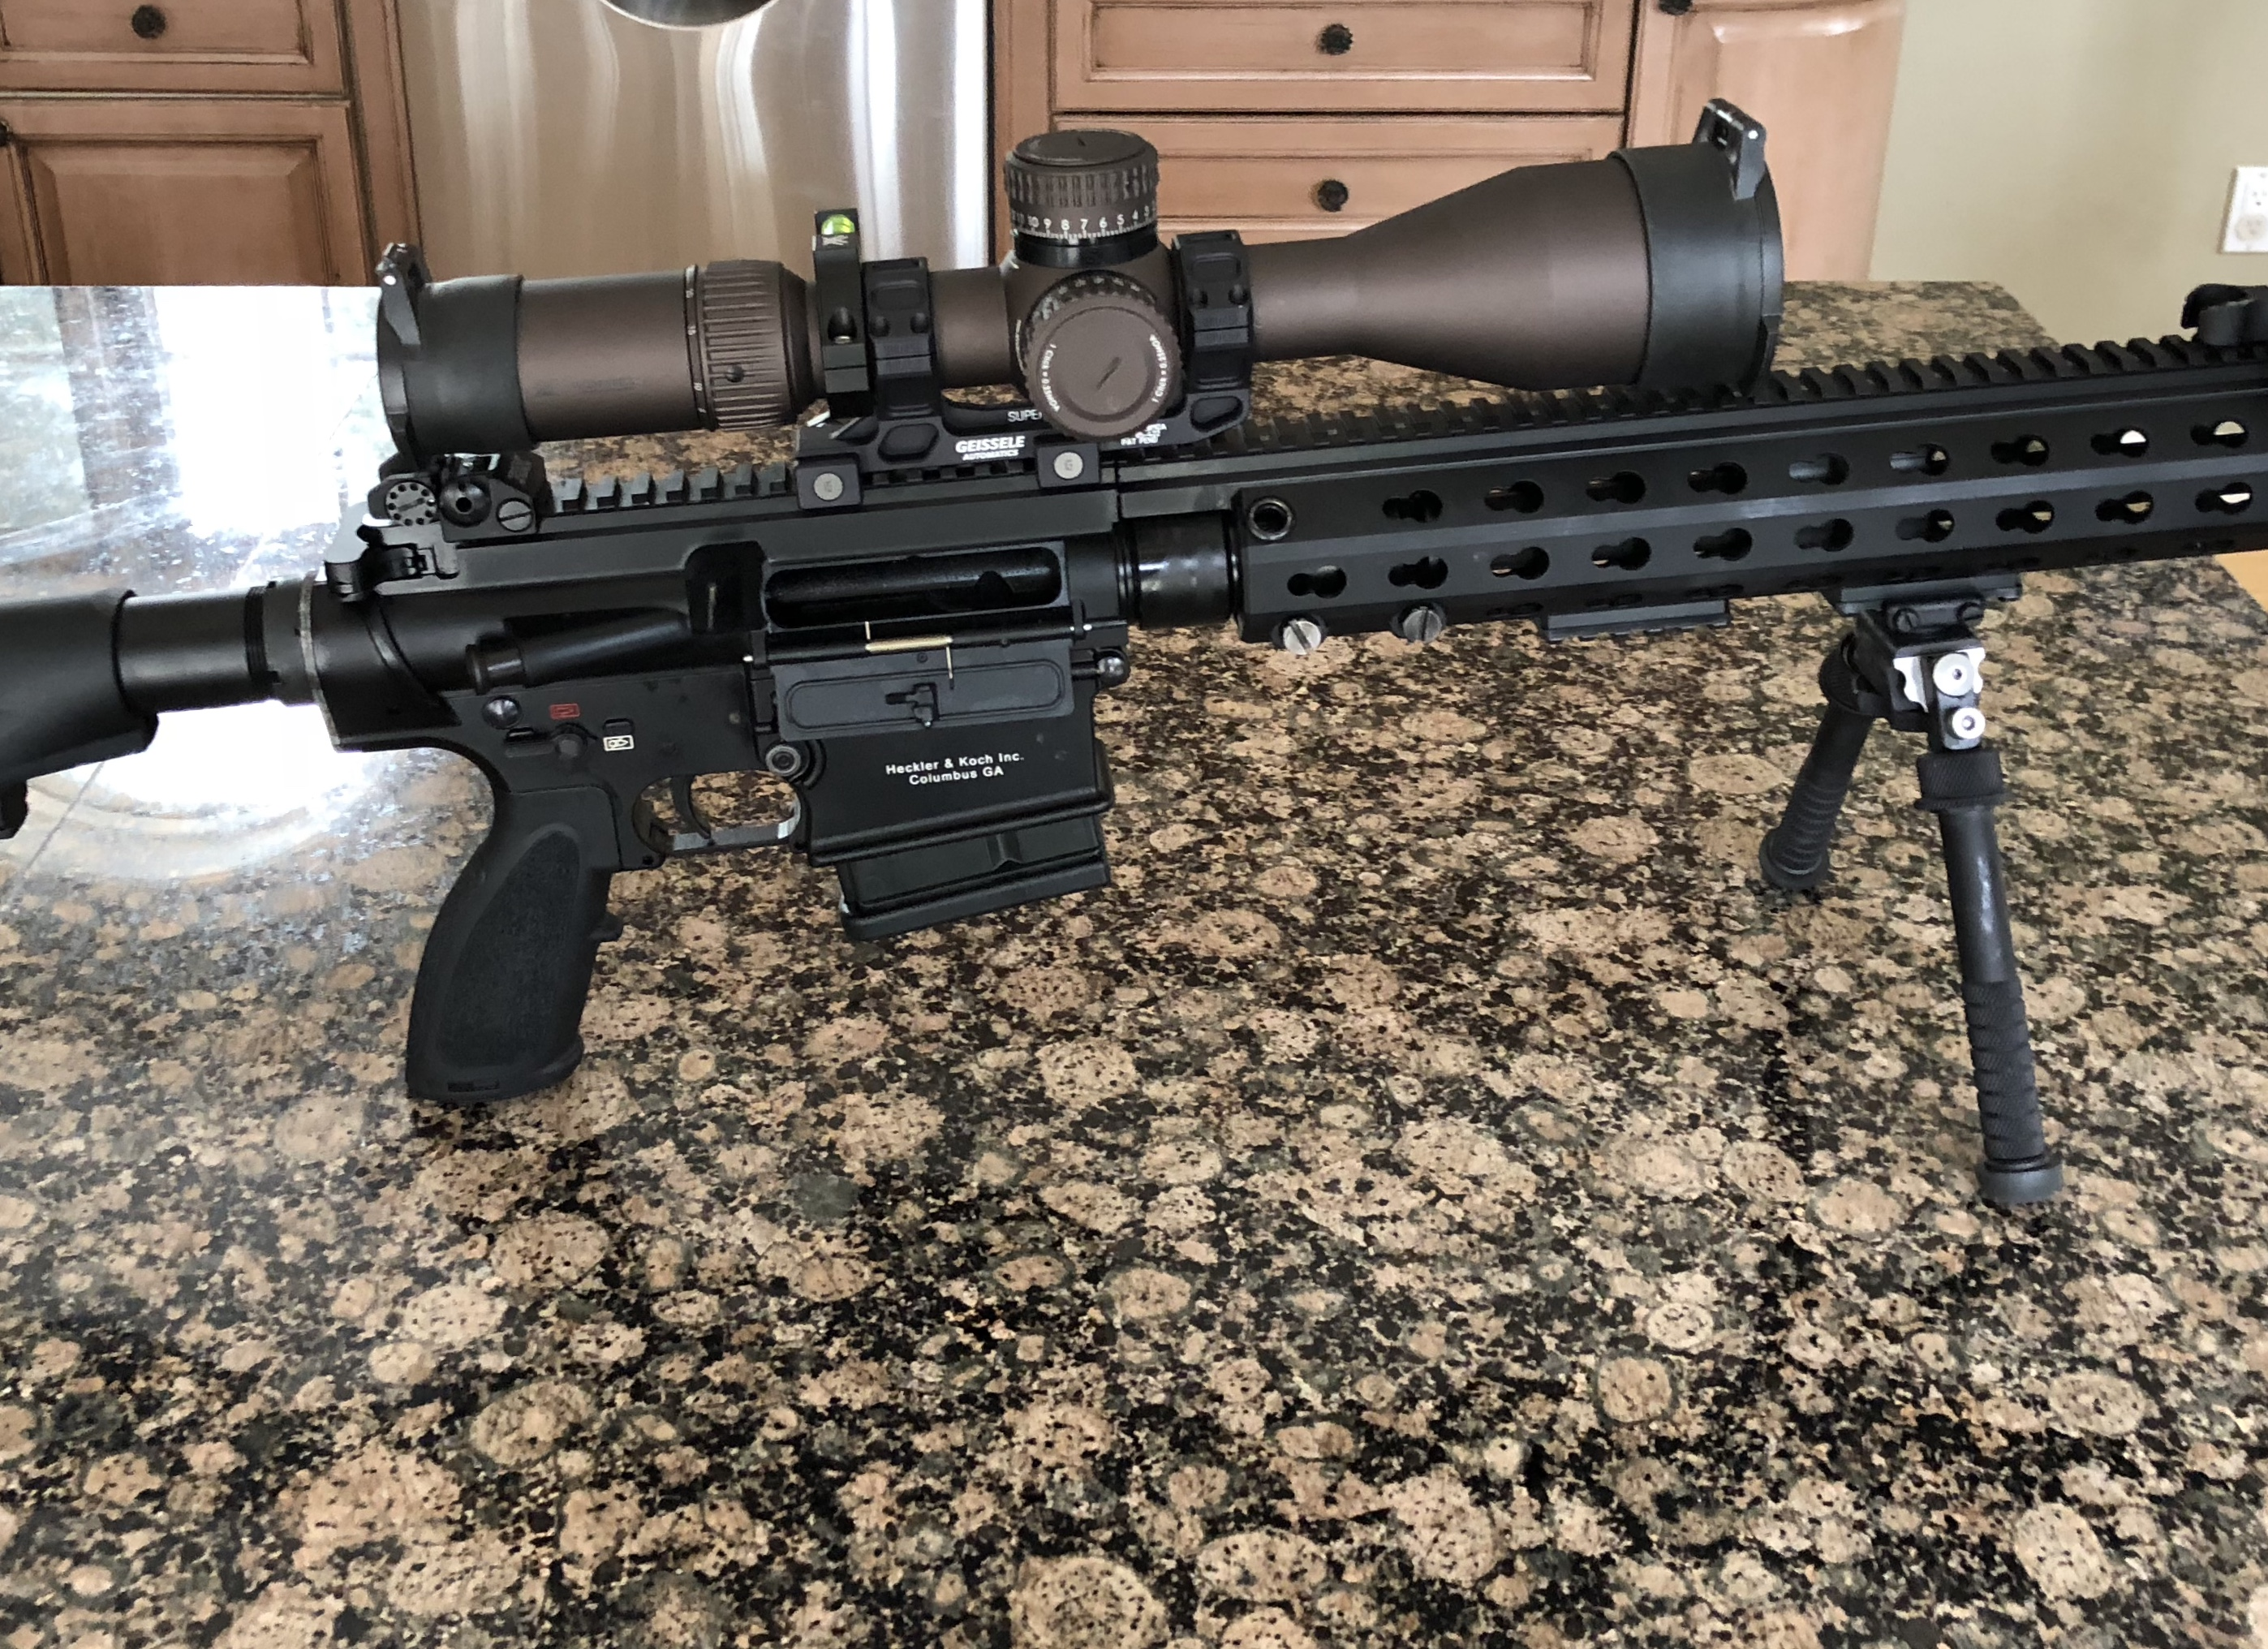 Vortex Razor II HD 4.5-27x56 and Spuhr QDP mount 20MOA/6MIL on MR308/762-hk-w-vortex-razor.jpg